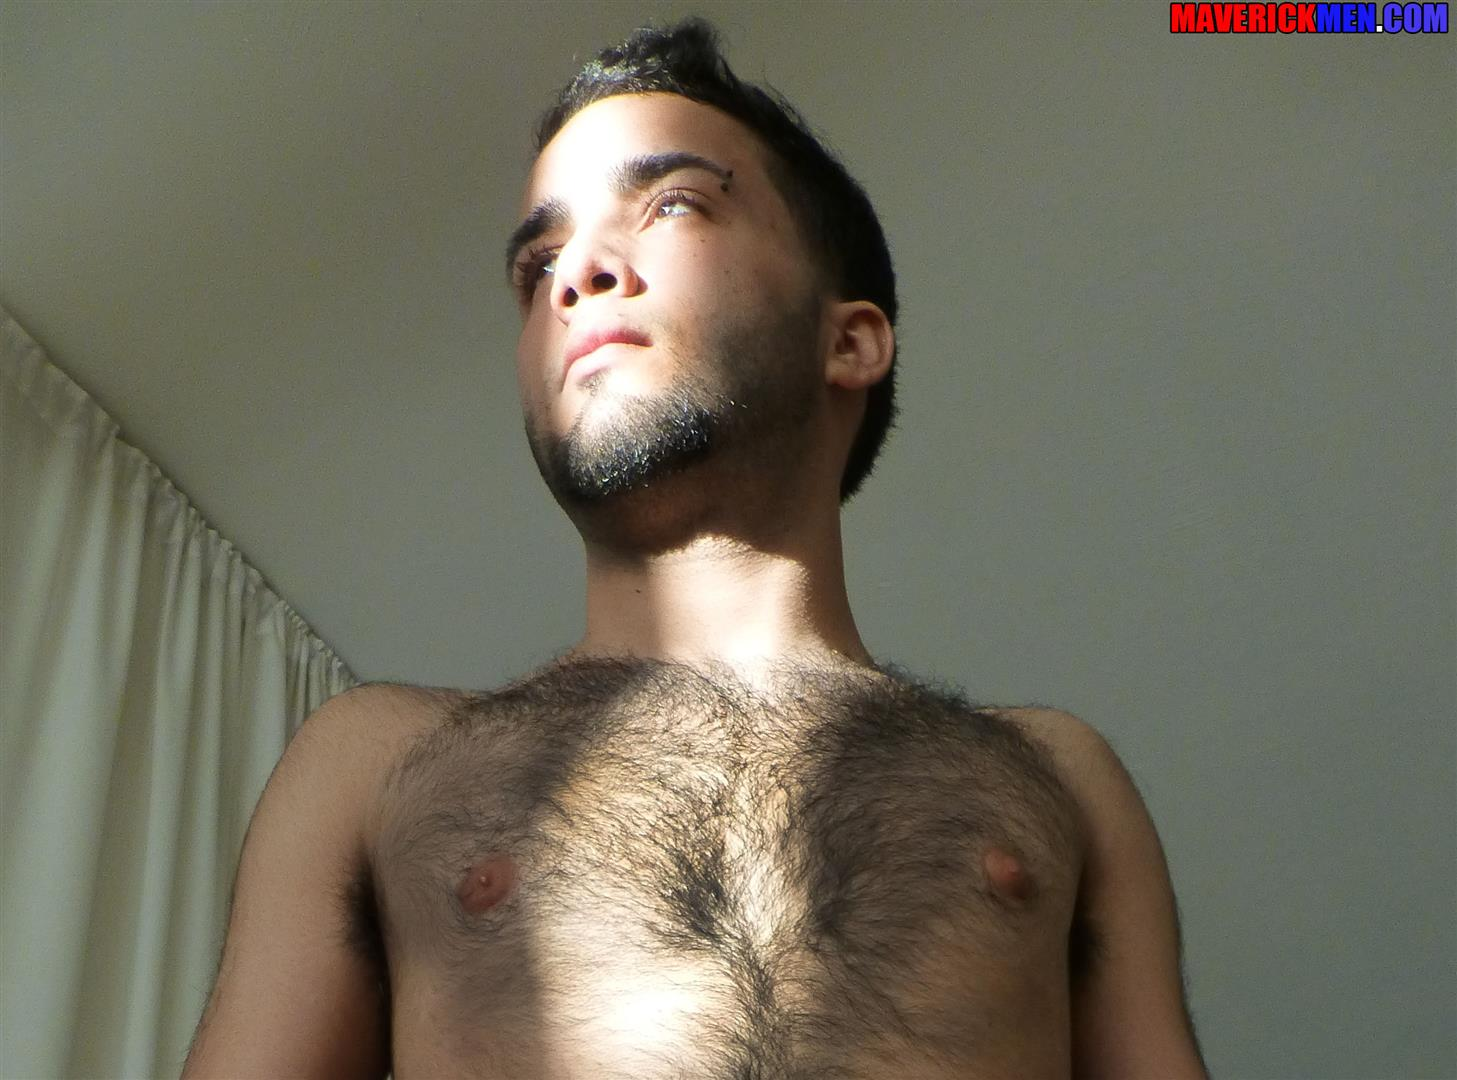 Maverick Men Little Wolf Hairy Guy With Big Uncut Cock Getting Barebacked By Two Daddies Gay Porn 10 Hairy Ass Young Guy Getting Barebacked By The Maverick Men